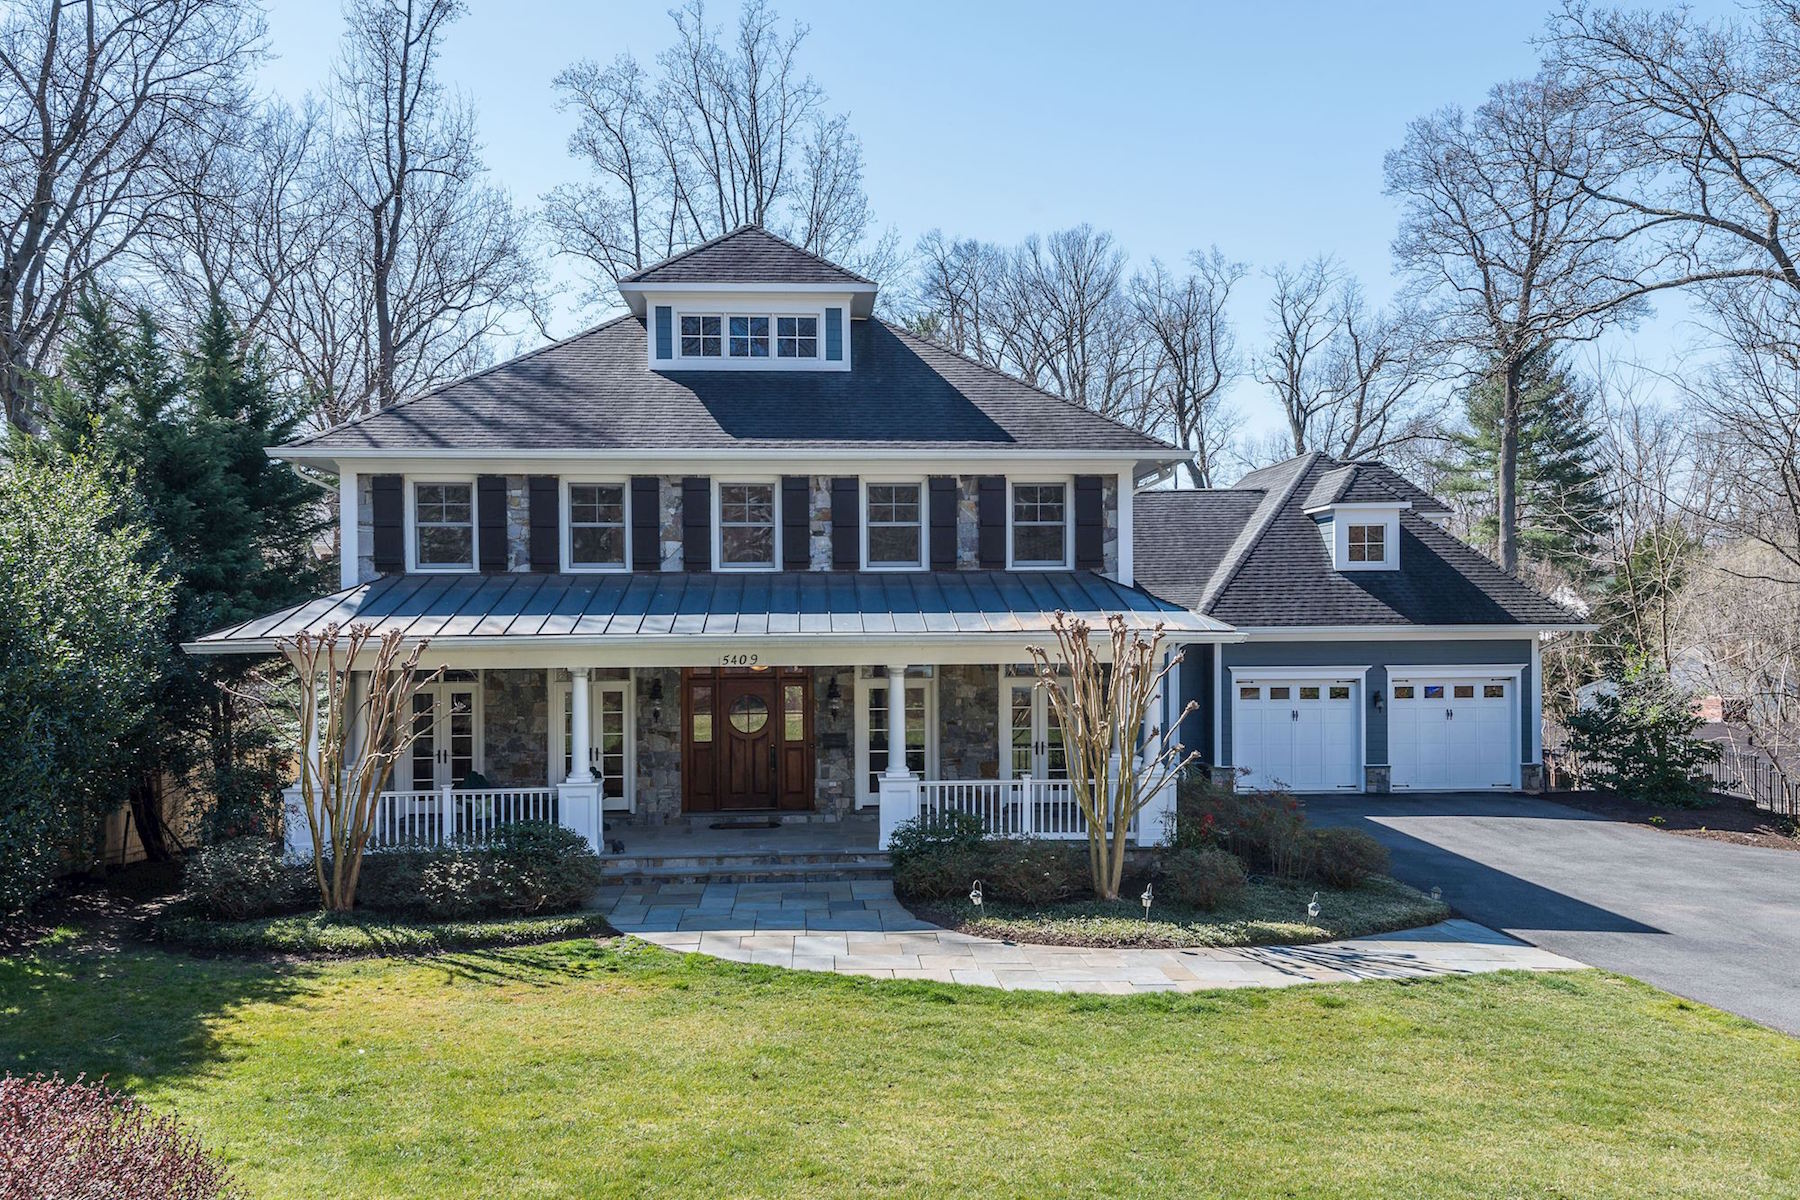 Single Family Home for Sale at Bethesda's Best Half Acre 5409 Tuscarawas Rd Bethesda, Maryland 20816 United States